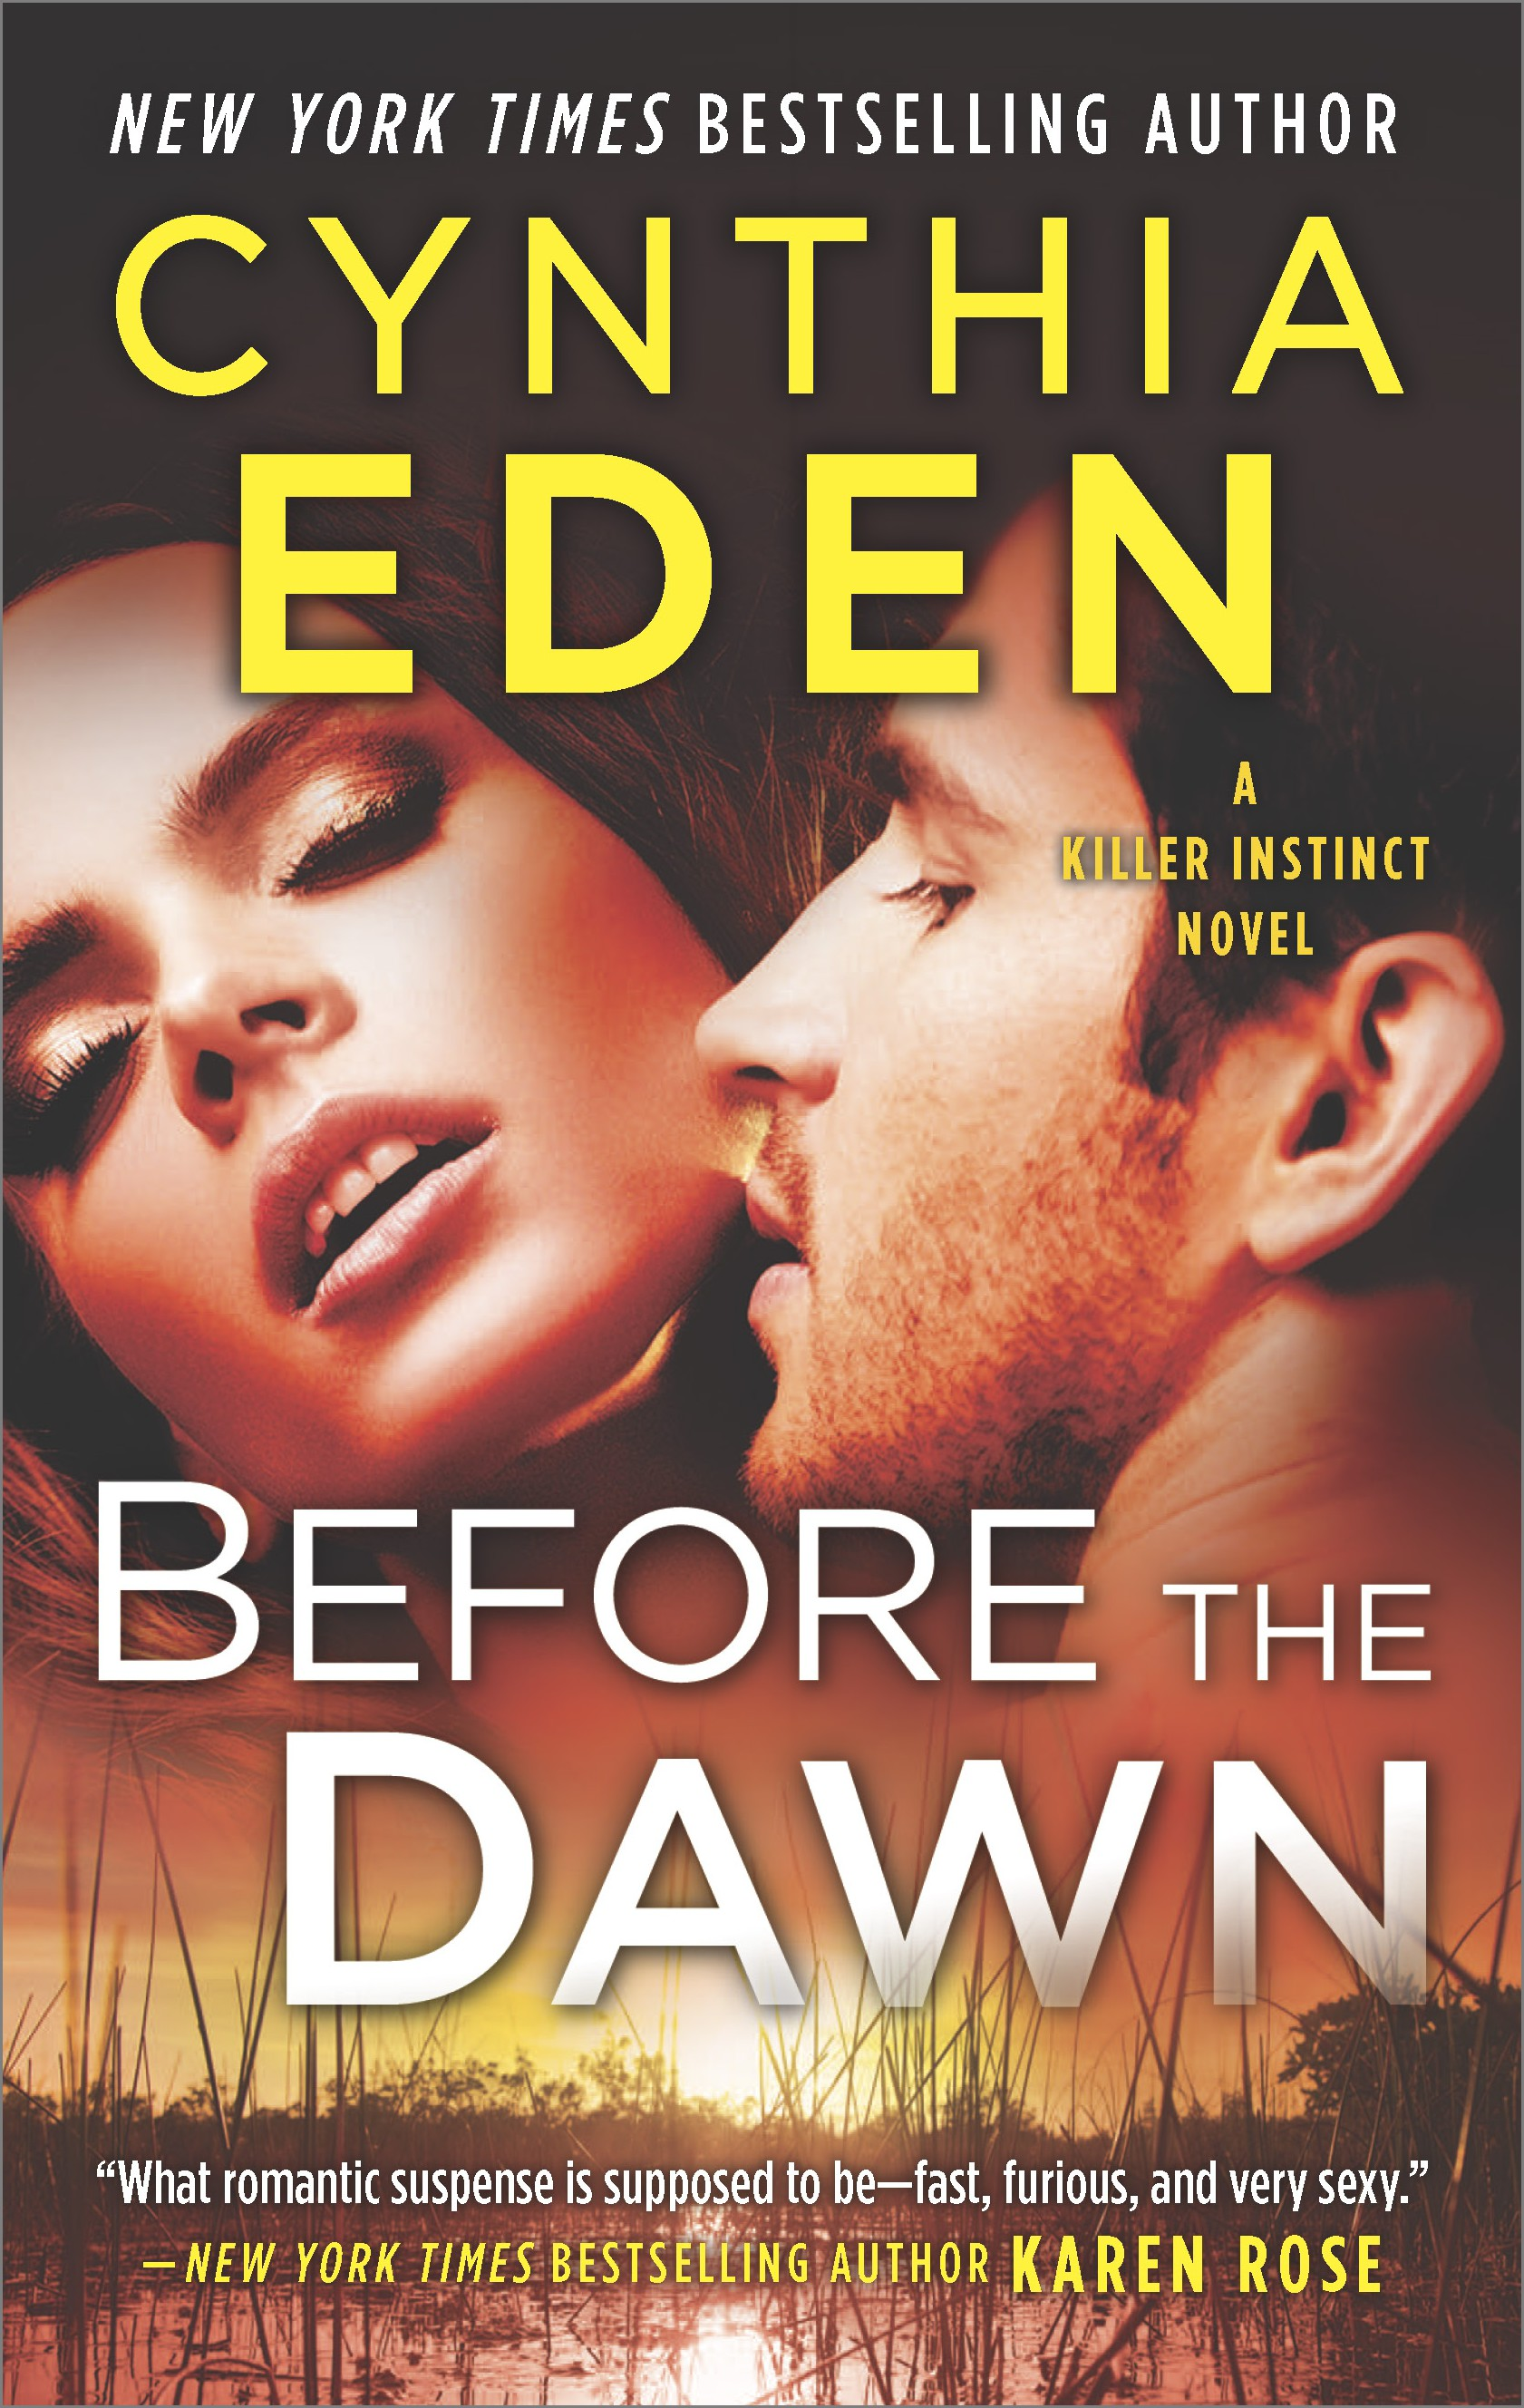 Before the Dawn A Novel of Romantic Suspense